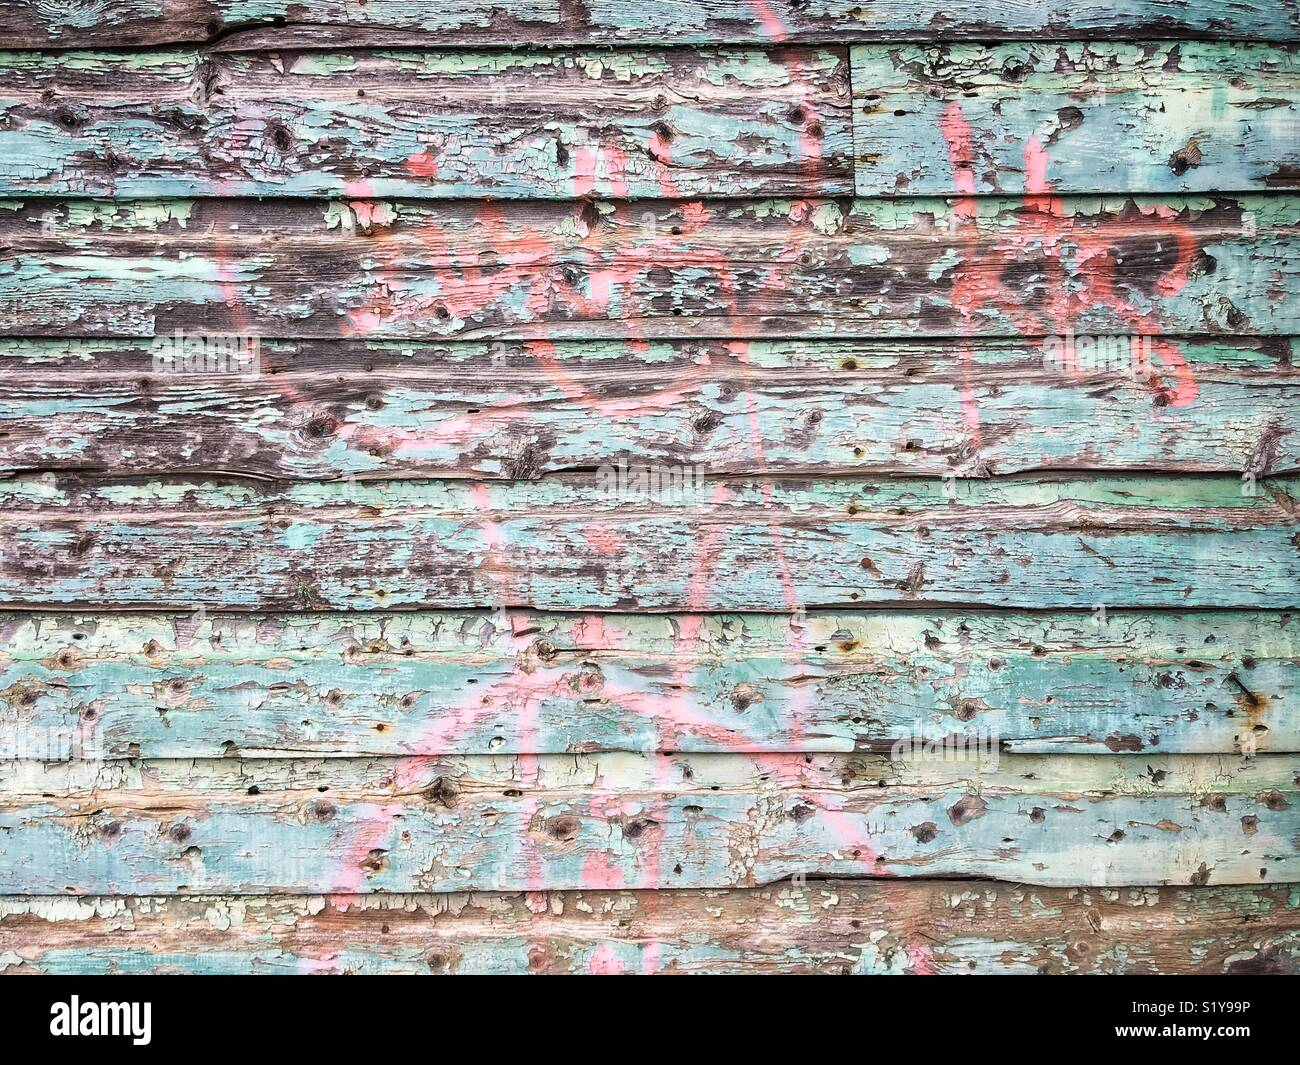 Decrepit wooden wall - Stock Image